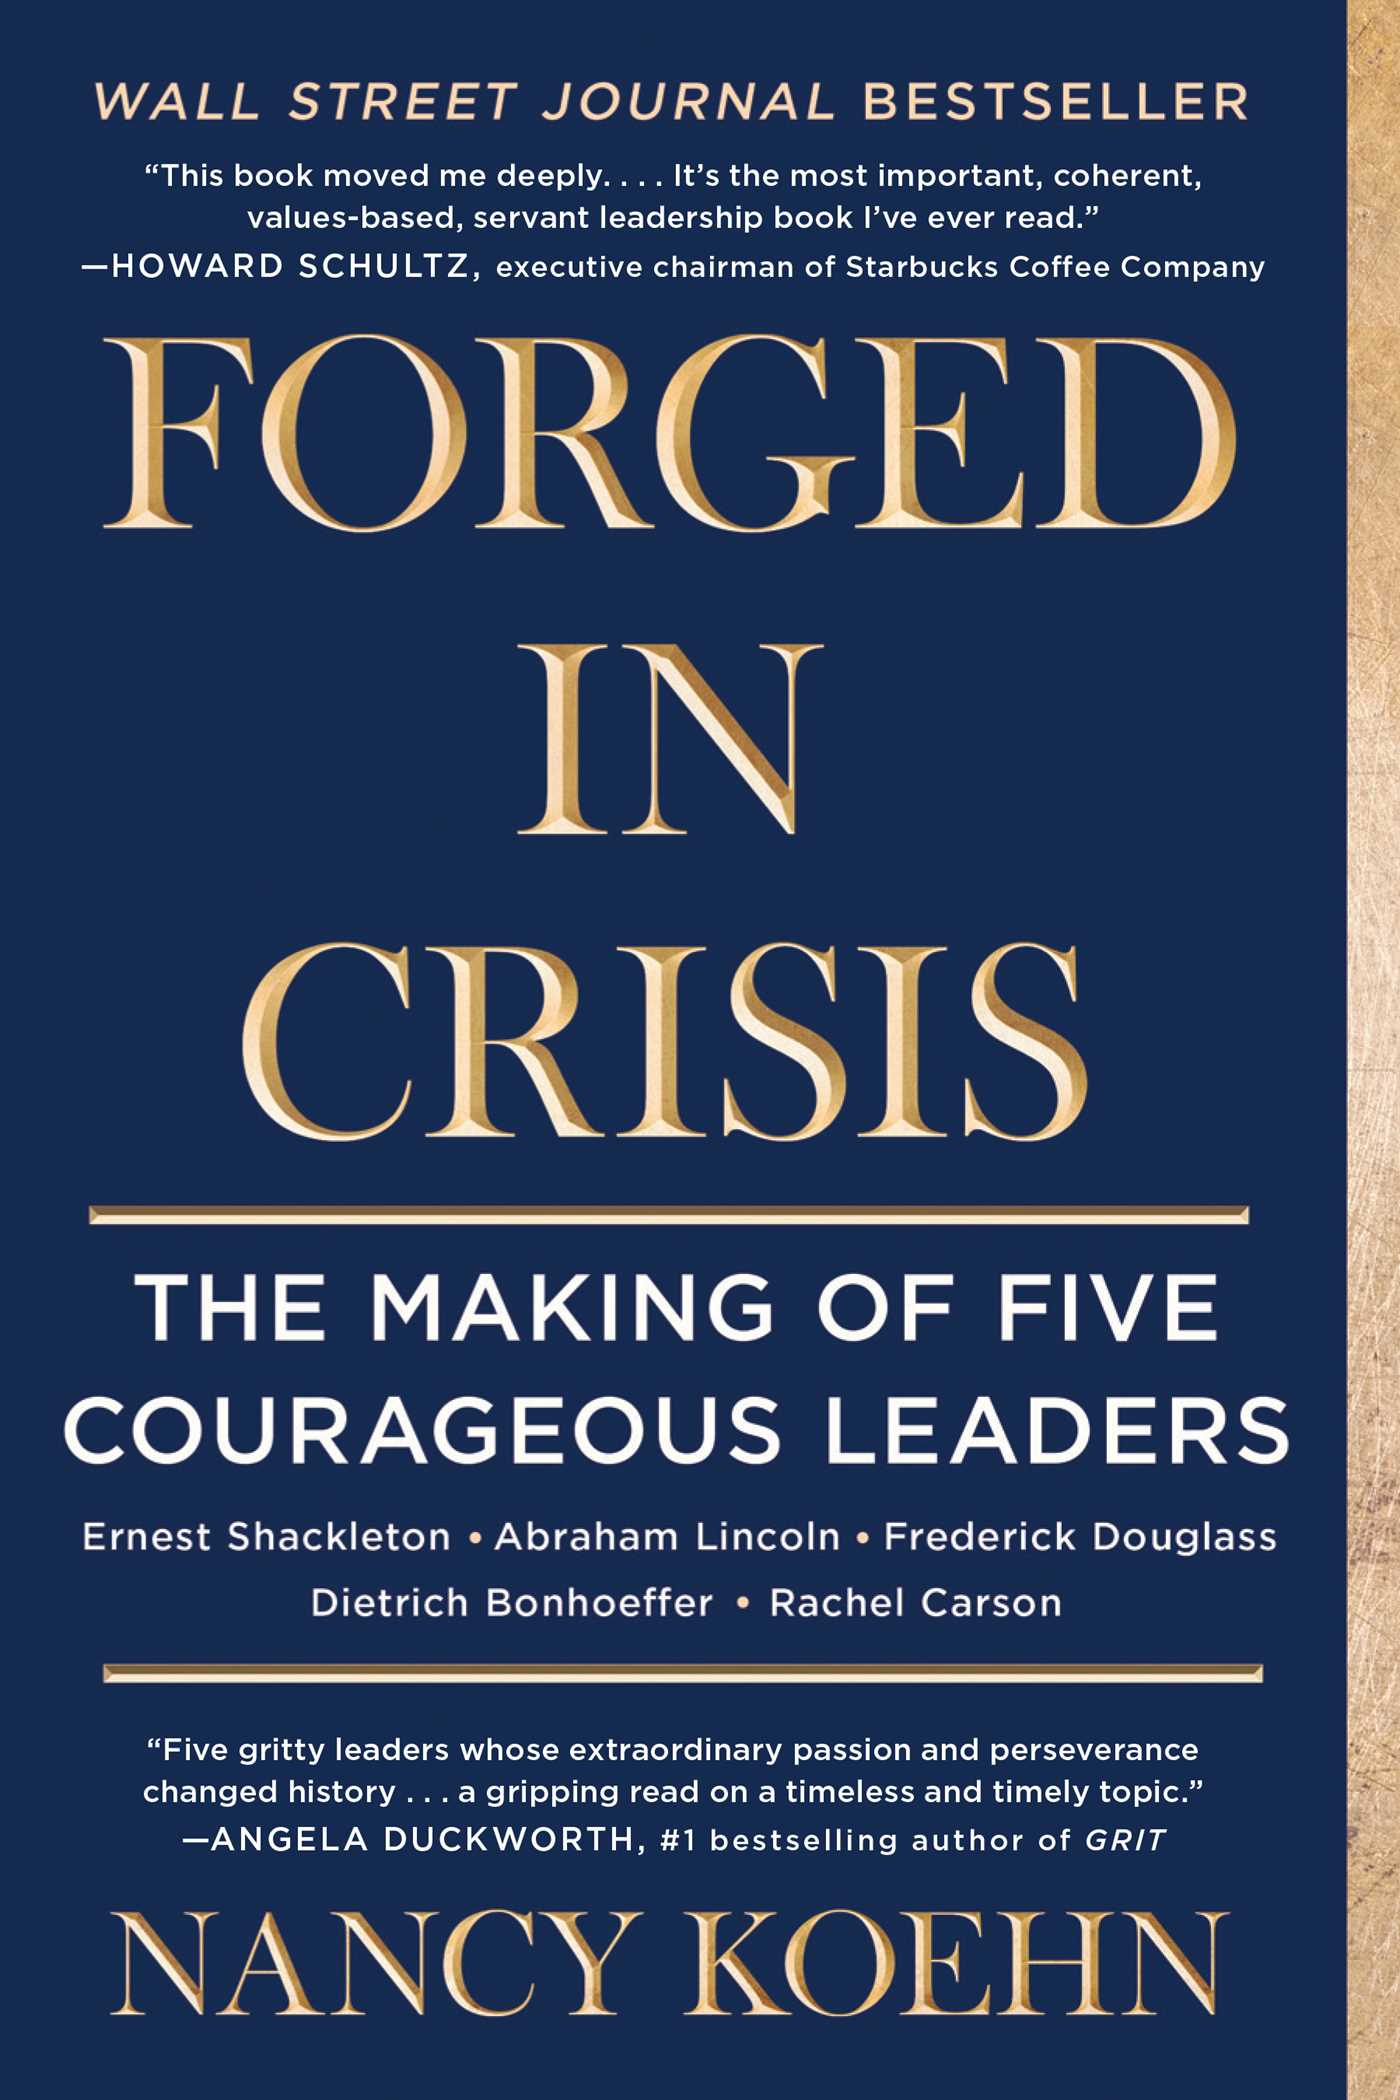 Forged in crisis ebook by nancy koehn official publisher page the power of courageous leadership in turbulent times fandeluxe Document